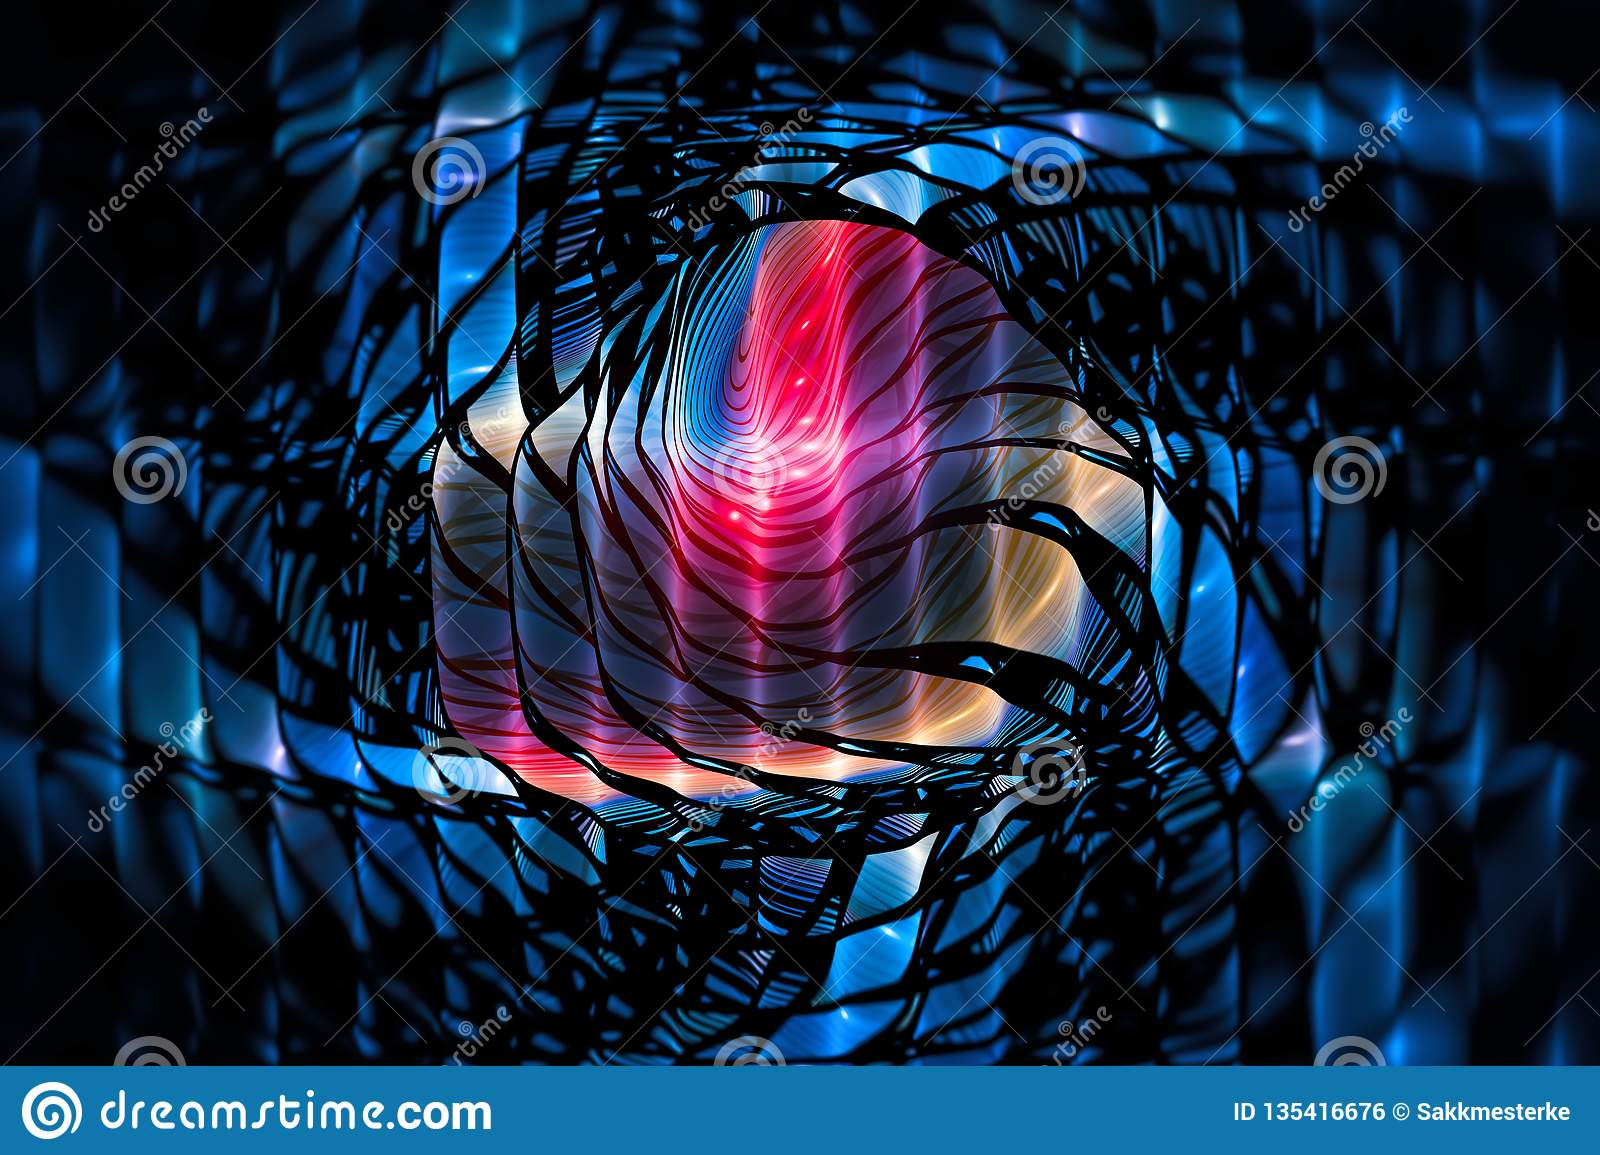 Colorful glowing stained glass computer generated abstract background